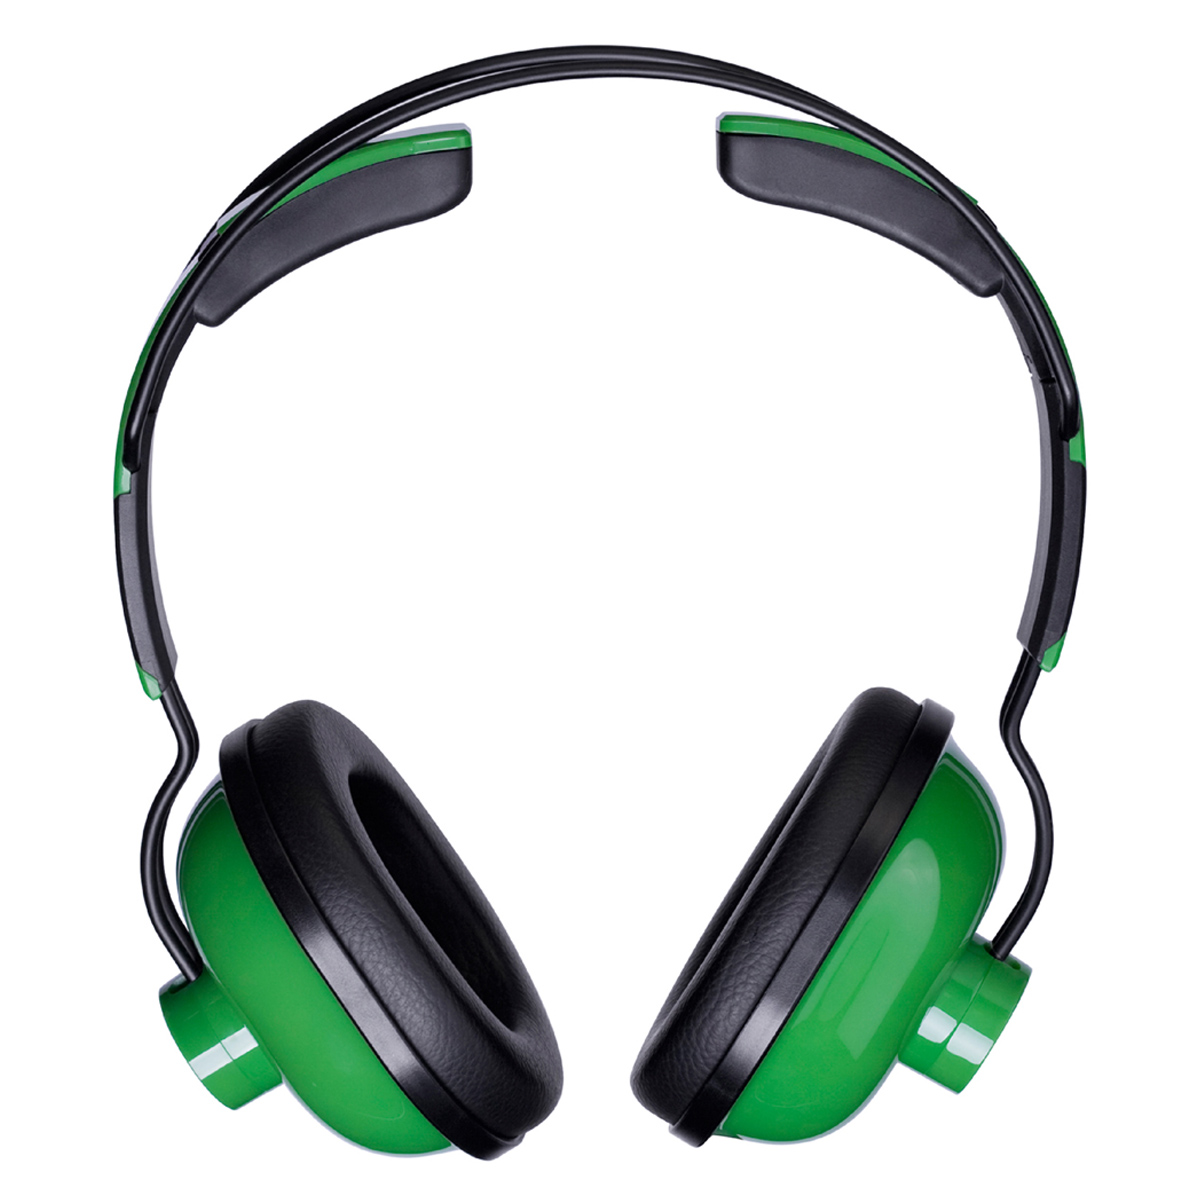 HD651 - Fone de Ouvido On-ear Verde HD 651 - Superlux